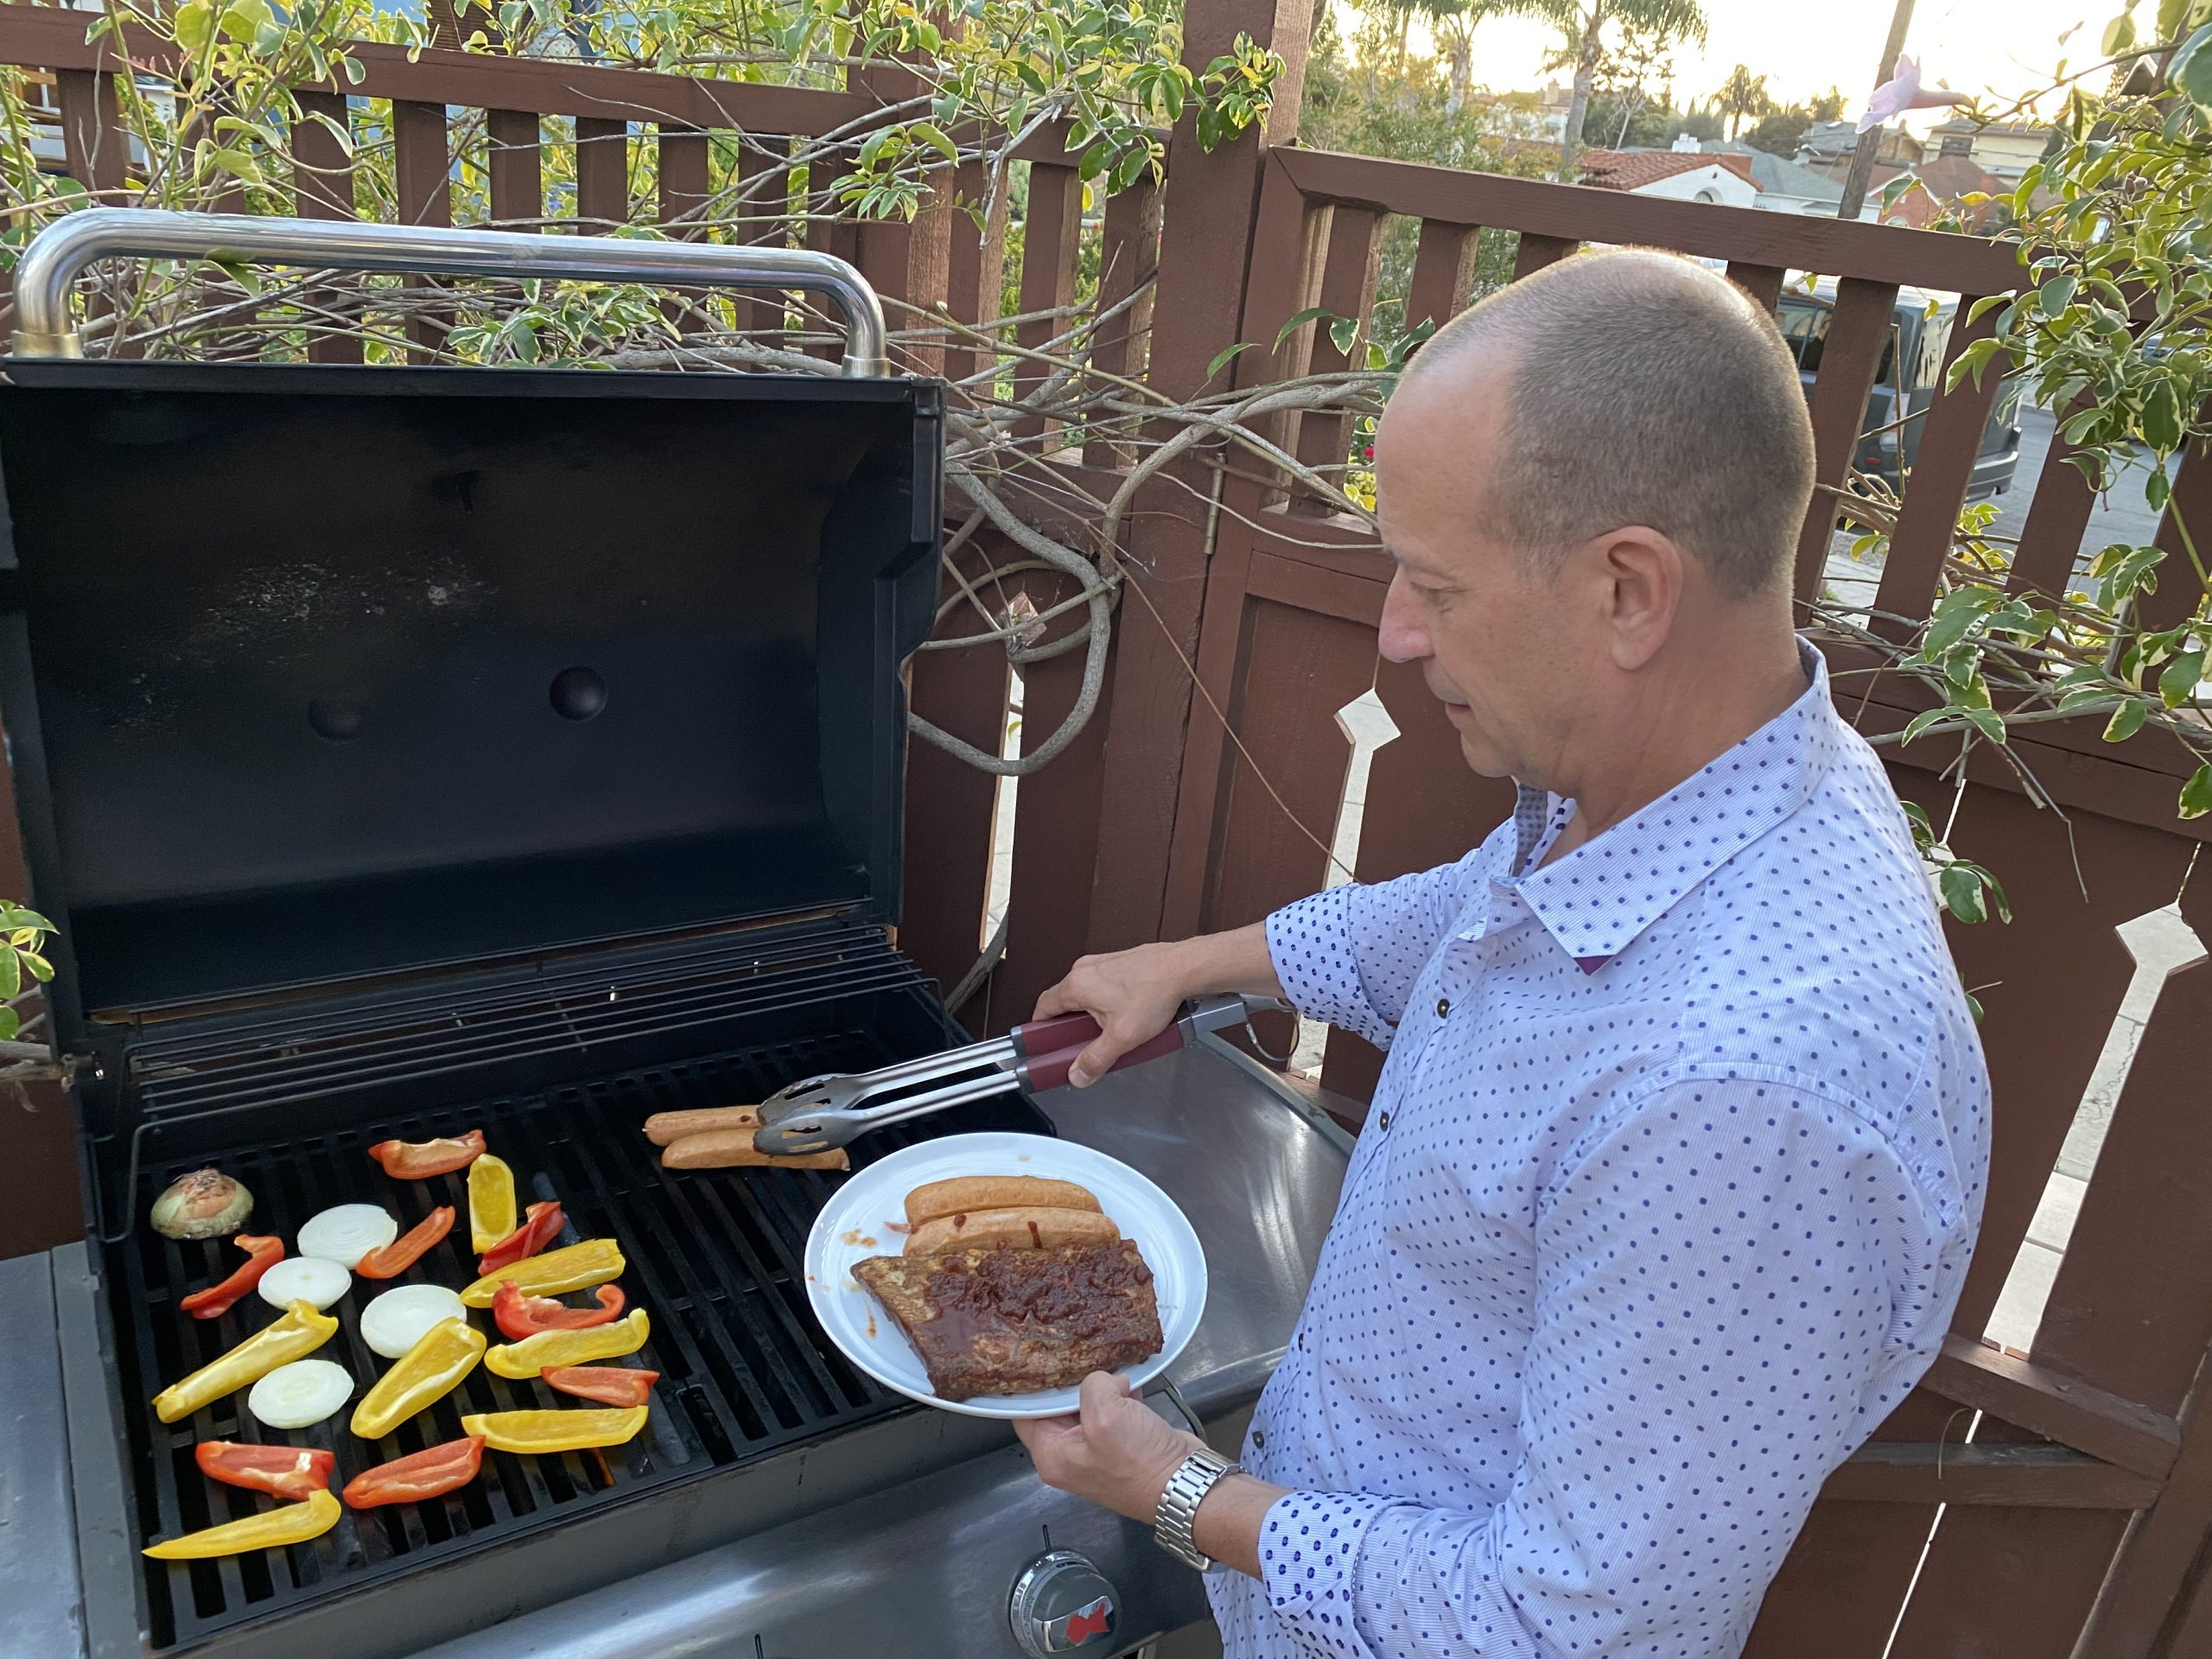 man grills ribs, hot dogs and vegetables on open barbeque